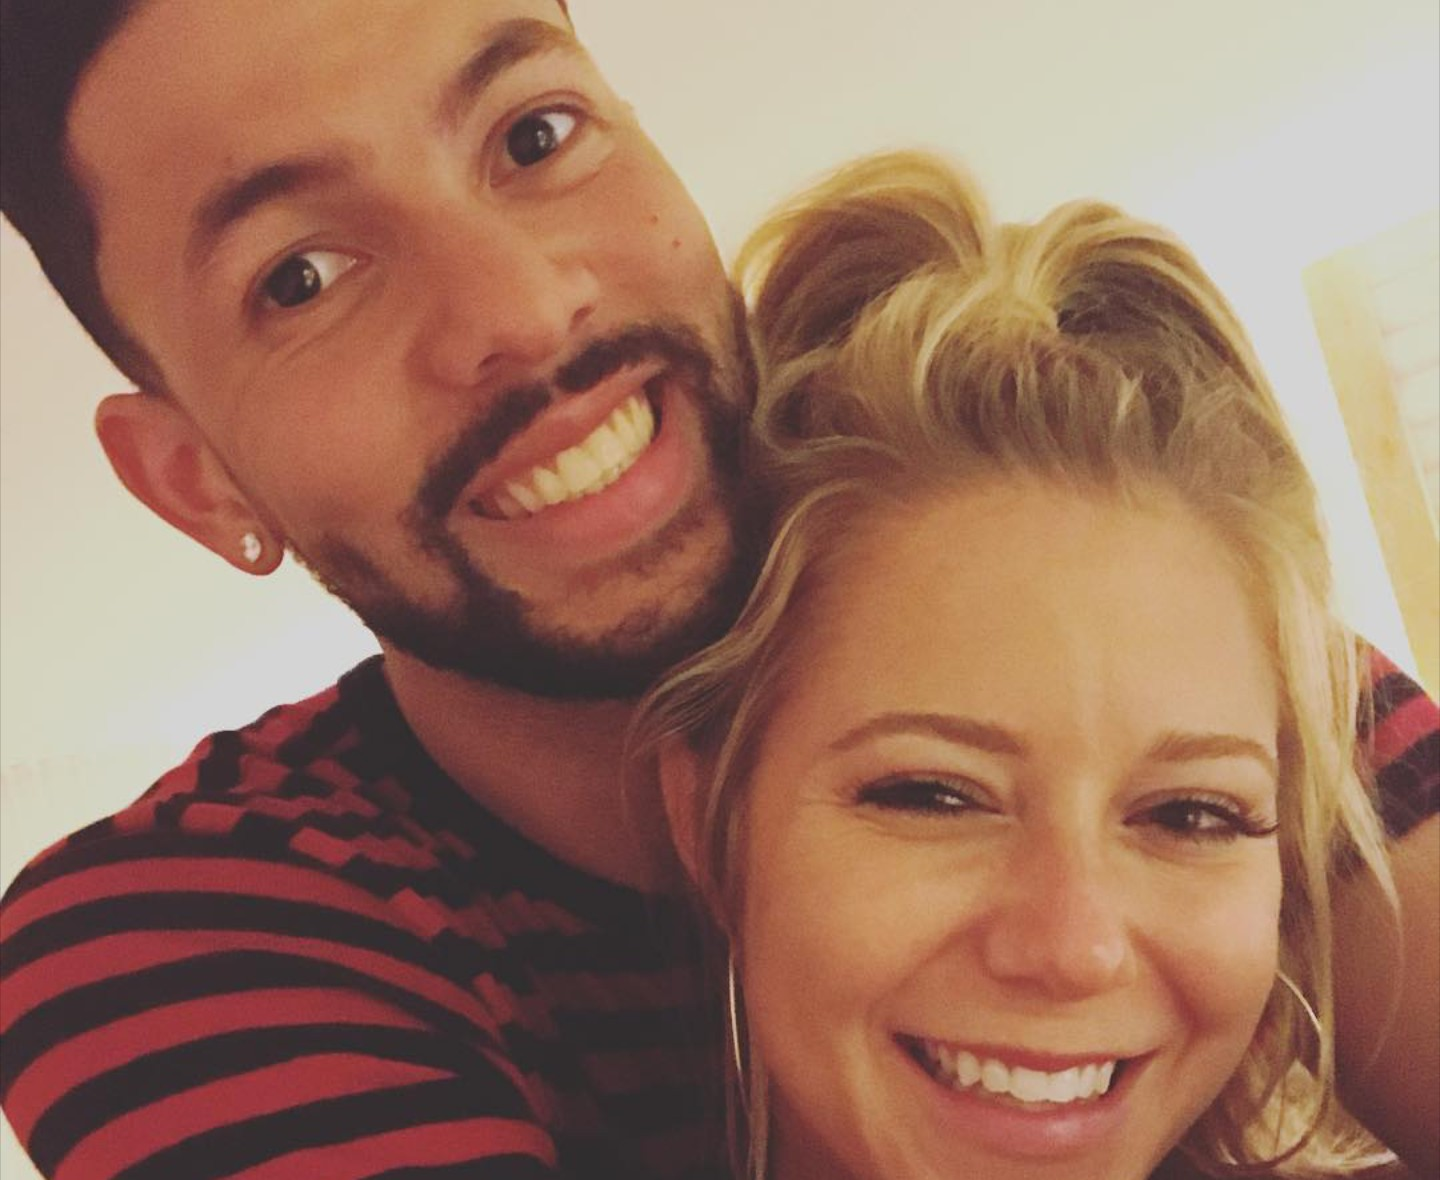 Austin Rivers Has Been Caught Cheating on His Fiancee Brittany Hotard